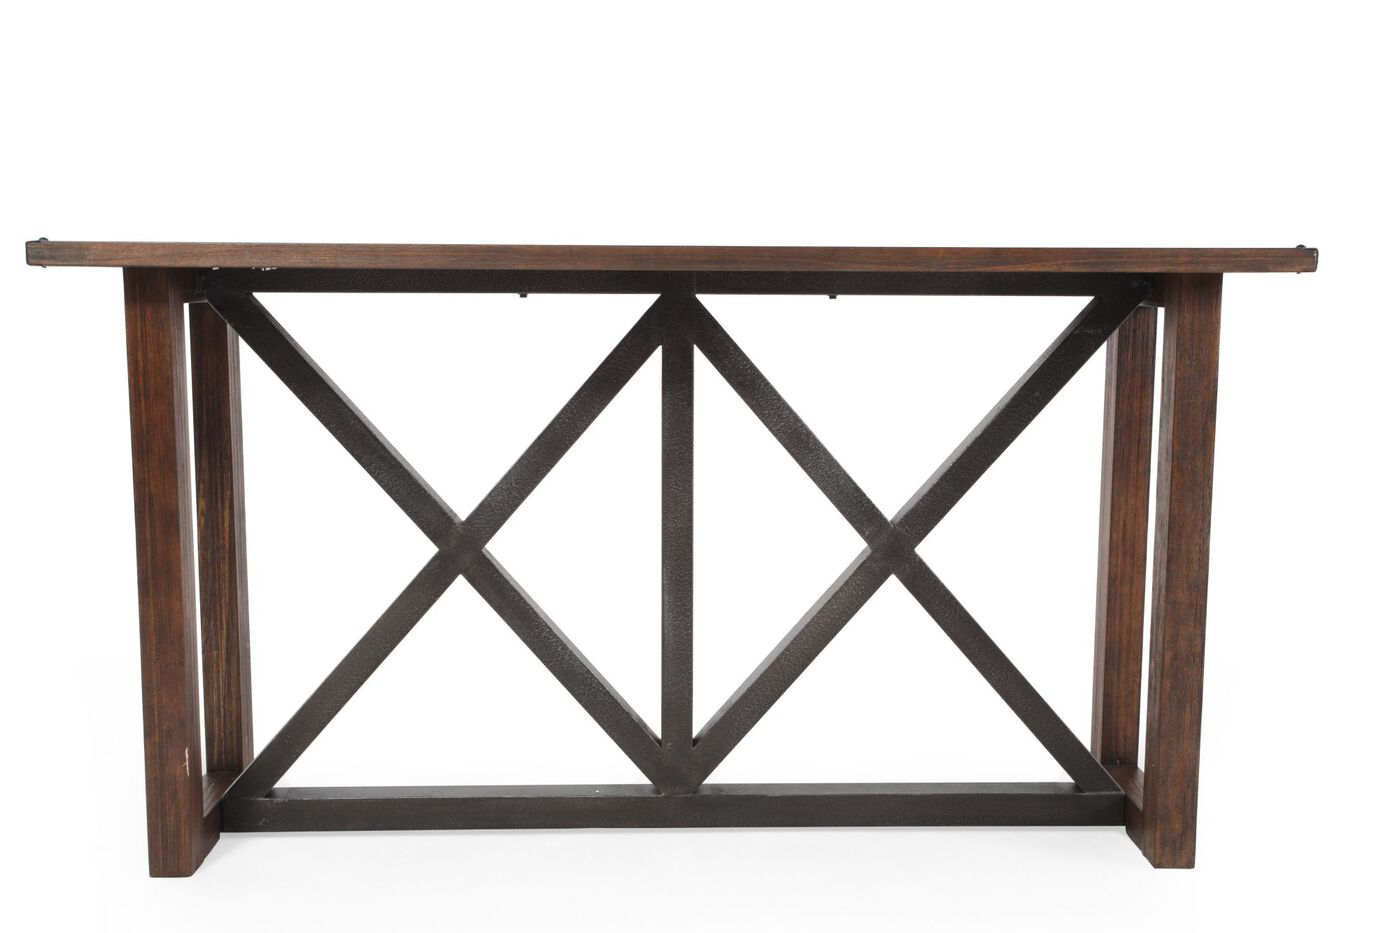 X braced contemporary sofa table in brown mathis for Sofa table vs console table